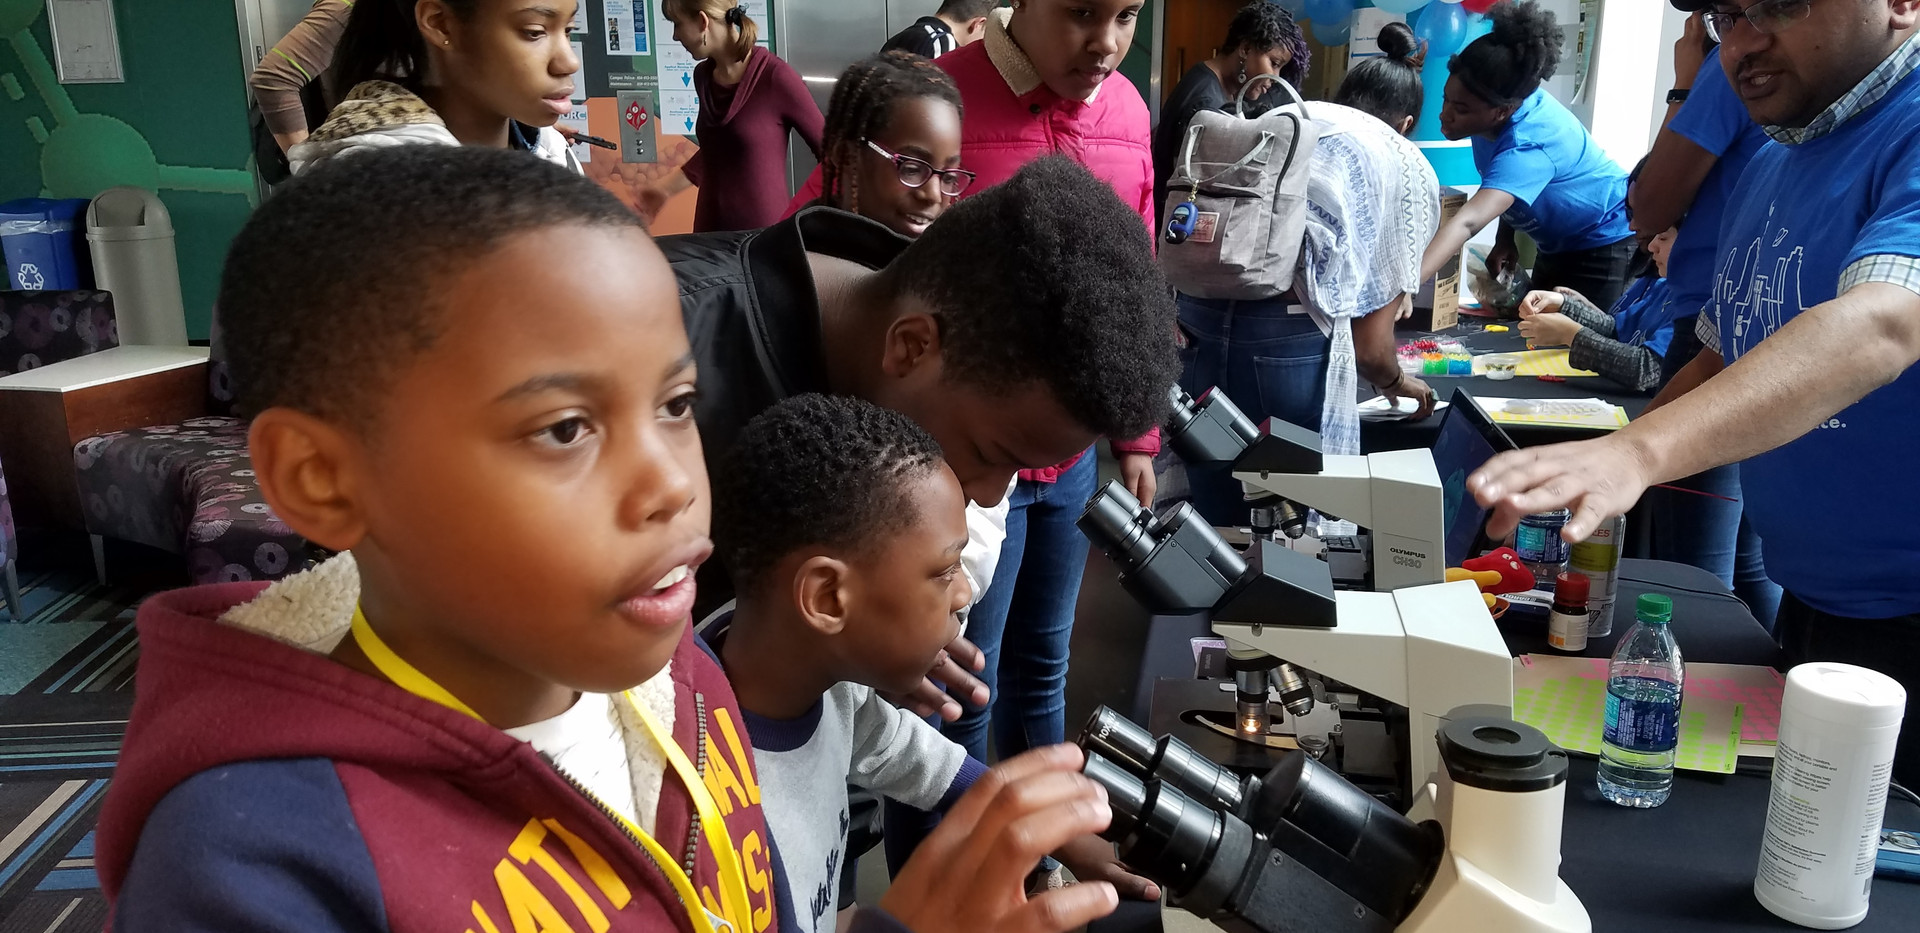 EAKC at the Atlanta Science Festival